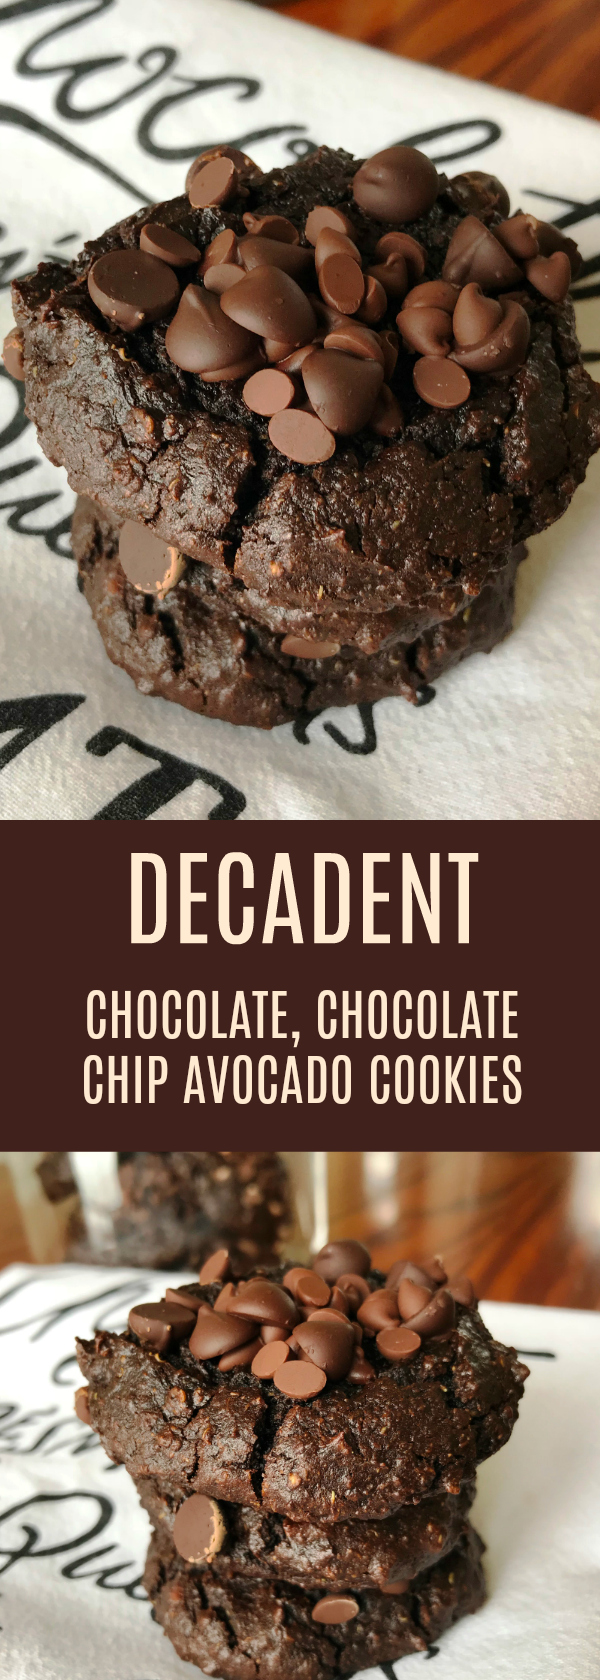 Gluten Free Decadent Chocolate, Chocolate Chip Avocado Cookies! A Healthier way to indulge a chocolate craving! These cookies are fudgy and delicious!